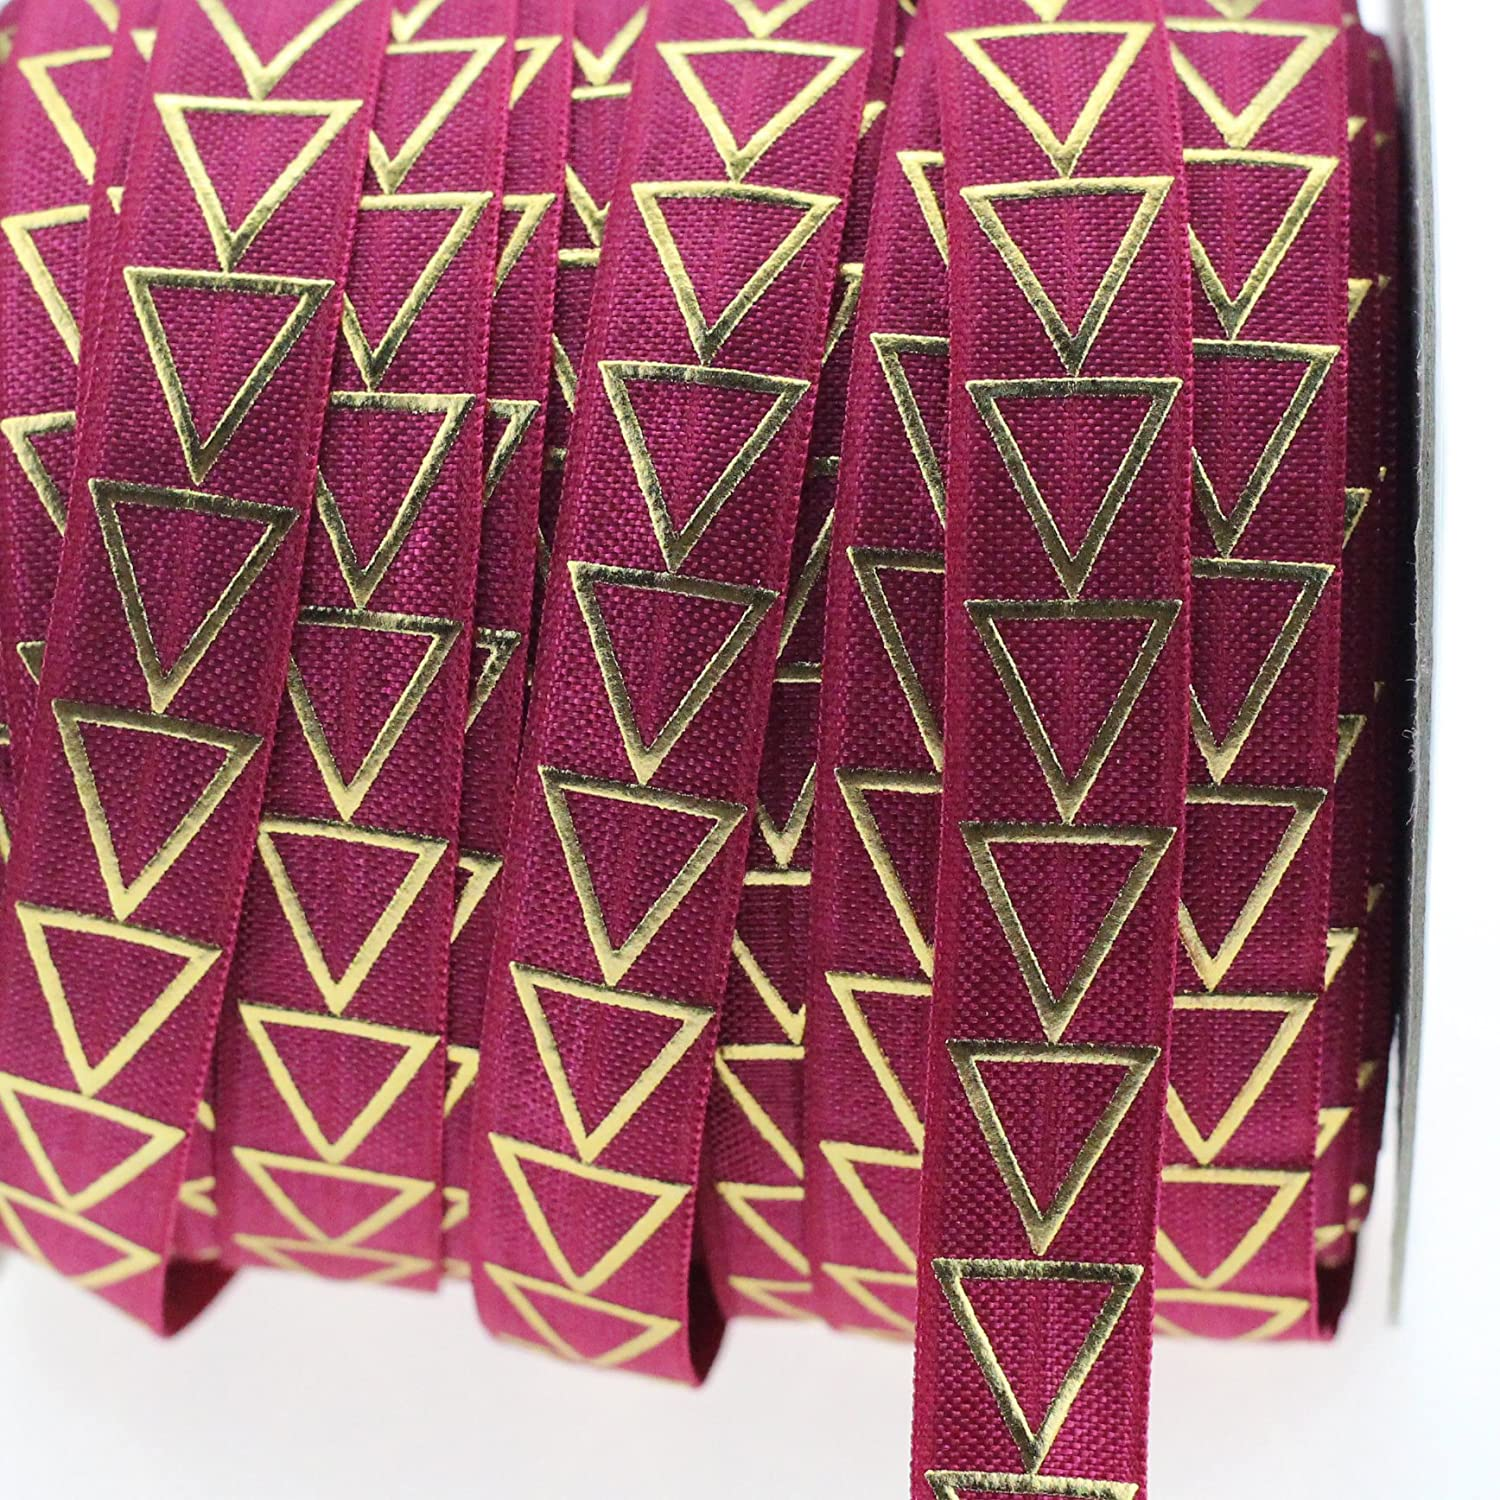 Midi Ribbon Stretch Gold Triangle Printed Fold Over Elastic Band 5/8 X 10 Yards/Pack-Color Daffodil-Handmade Hair Tie Headband Ponytail Holder Sewing Supplies